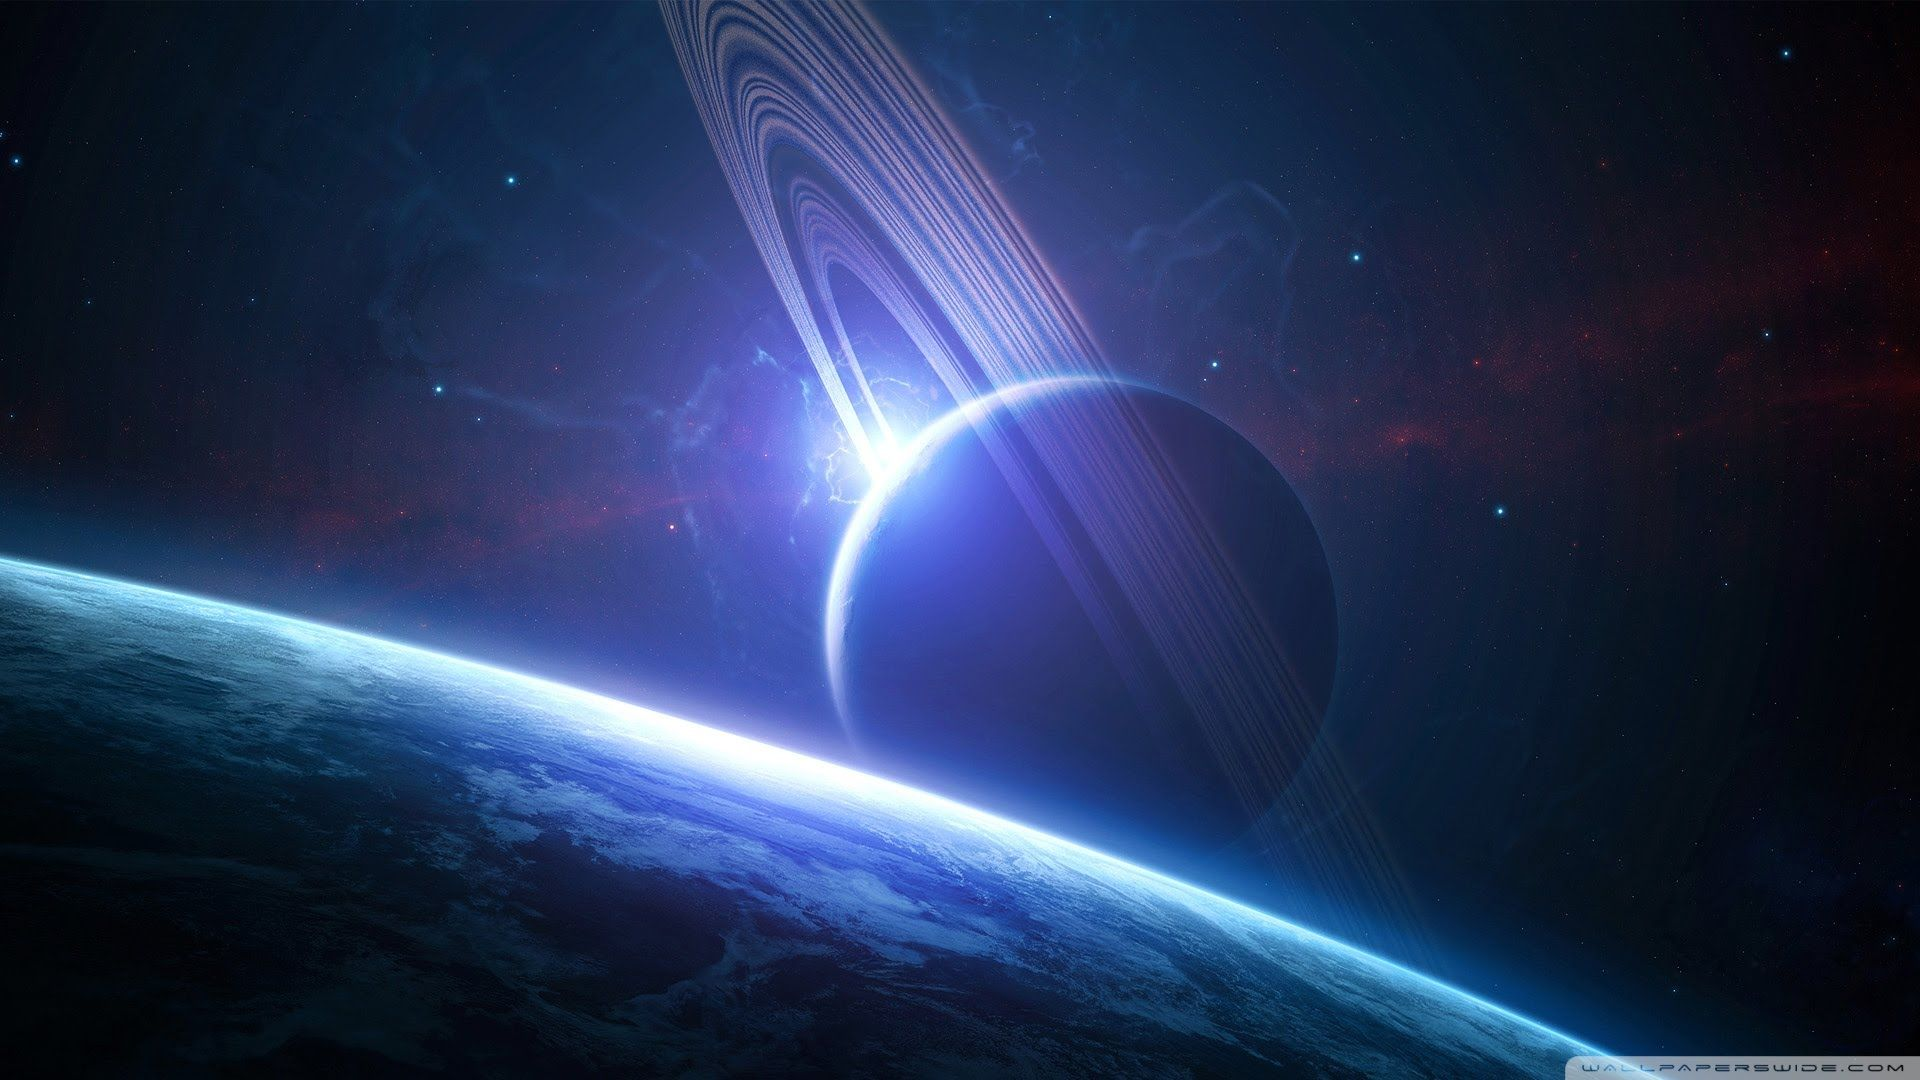 The Force Of Gravity What Is Gravity Full Documentary Hd Wallpaper Space Planets Wallpaper Planets